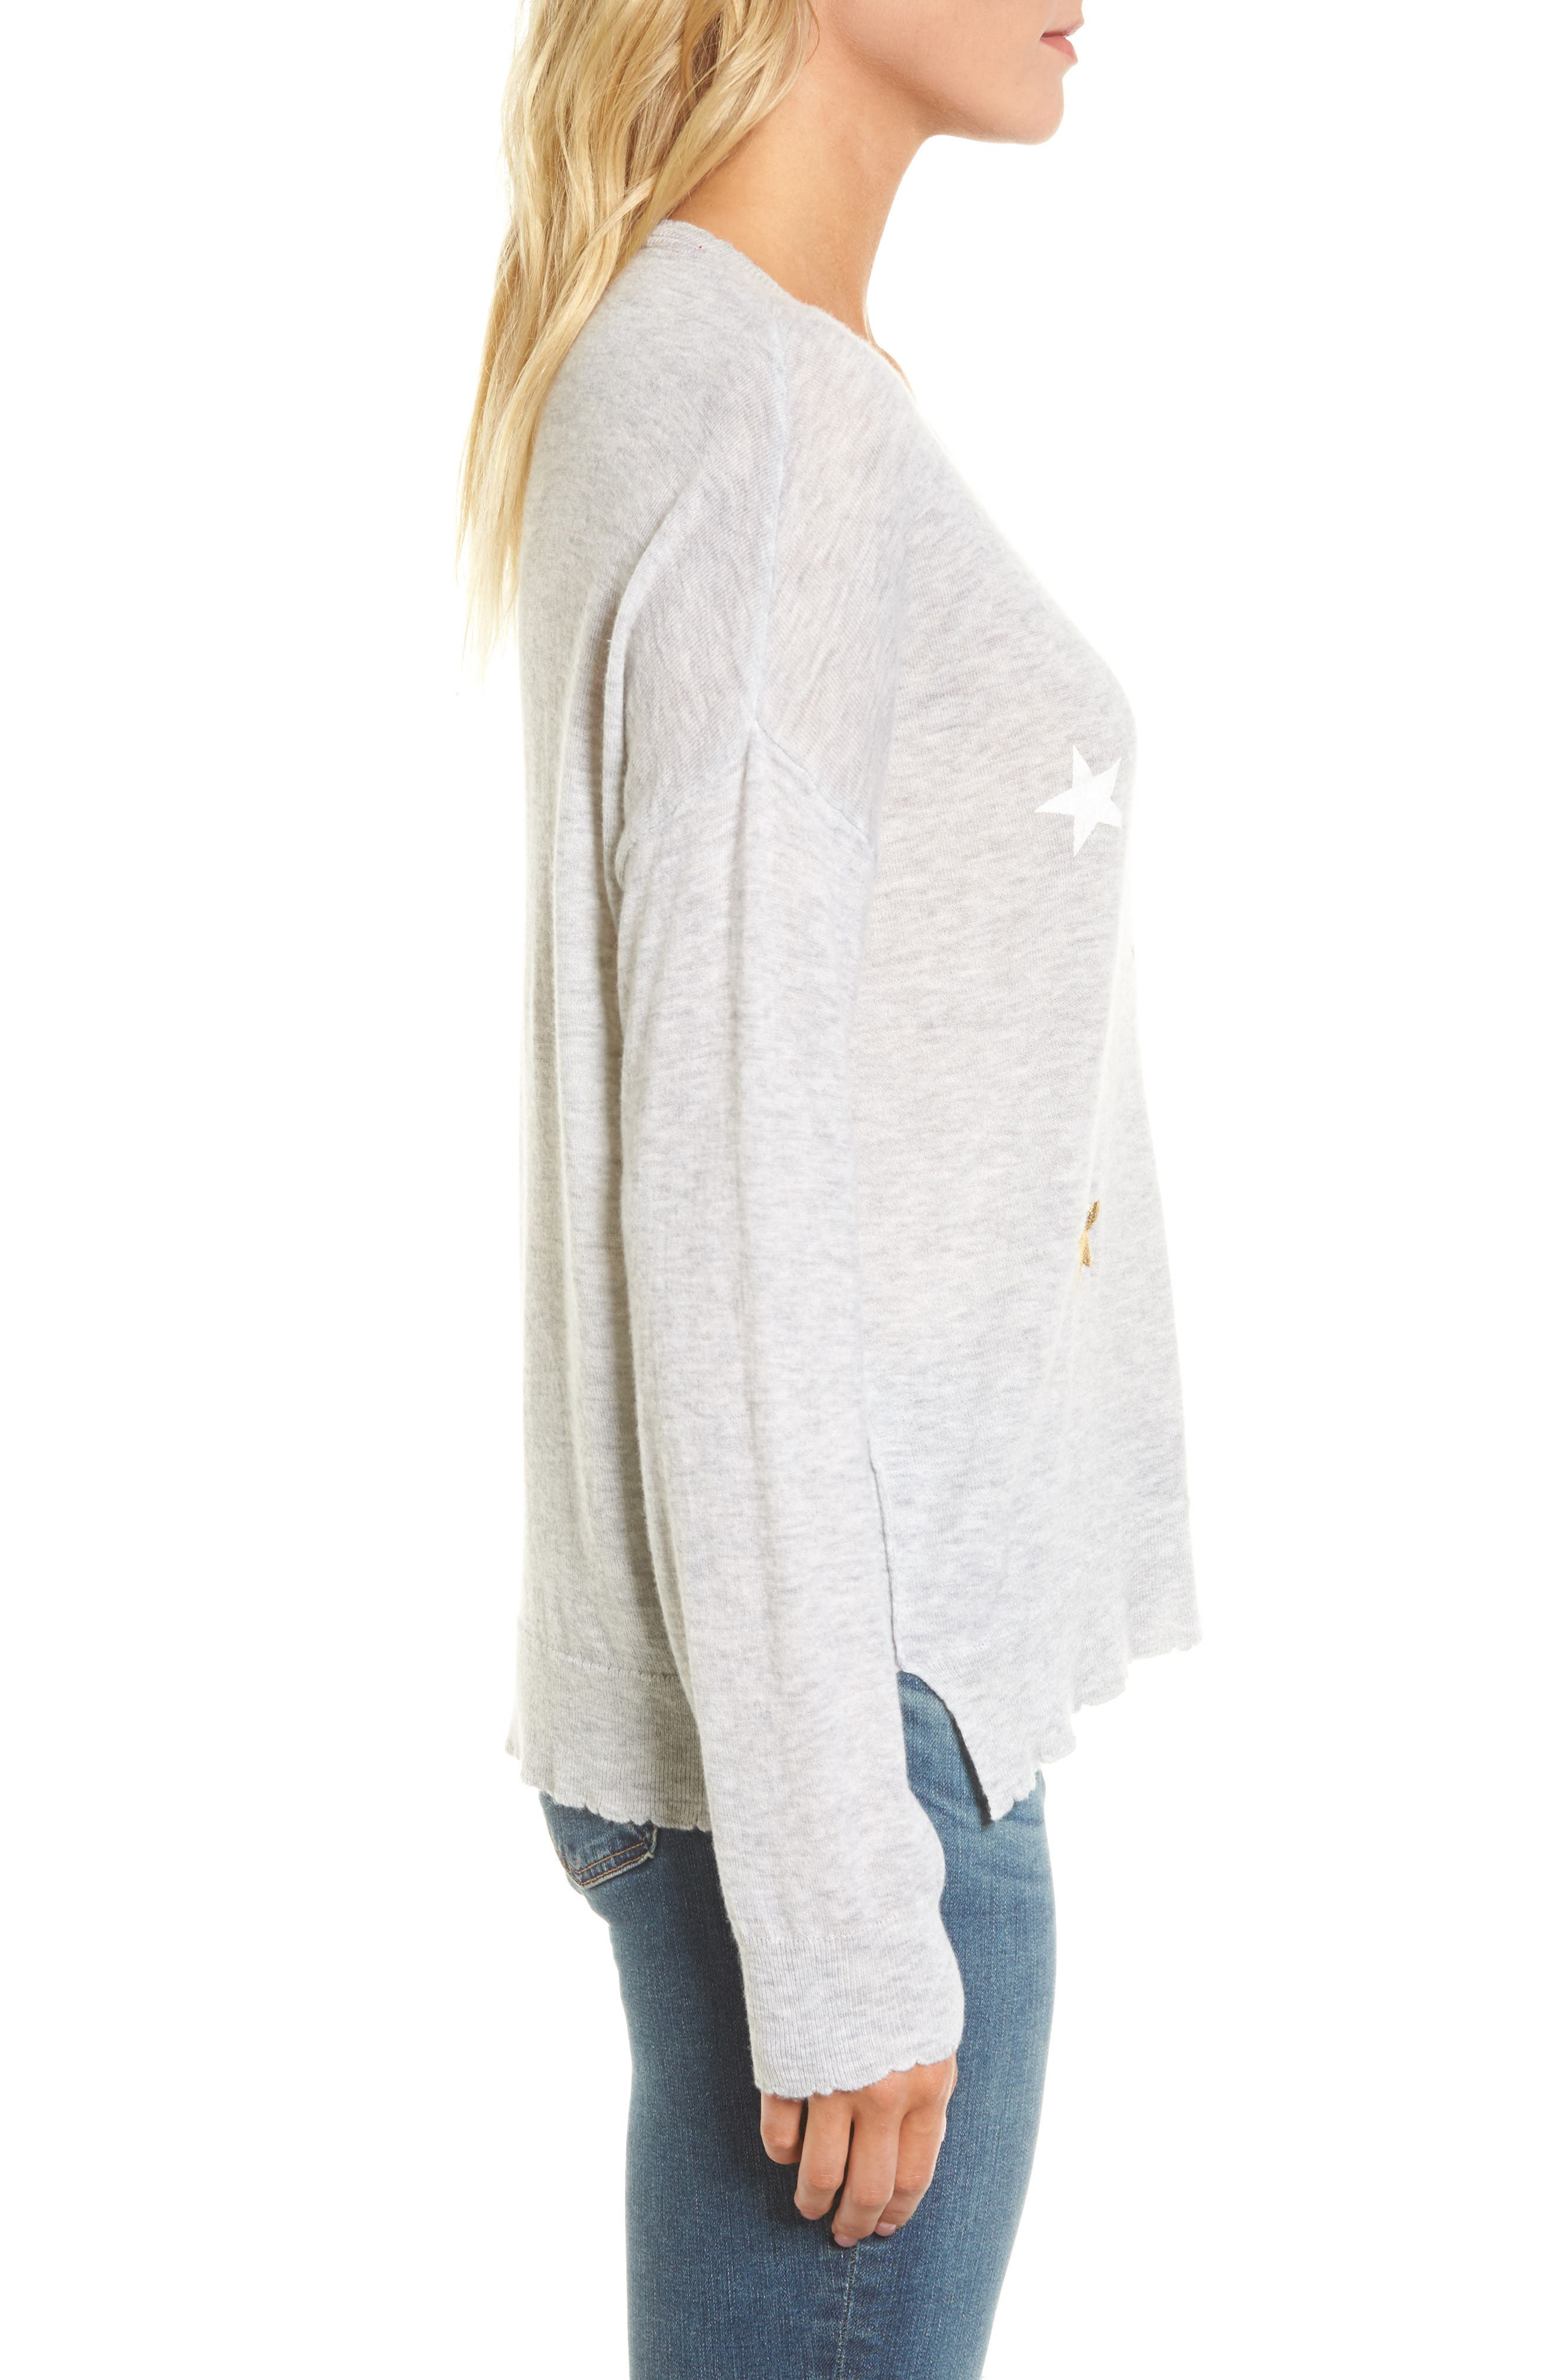 Stars Wool & Cashmere Sweater,                             Alternate thumbnail 3, color,                             Heather Grey